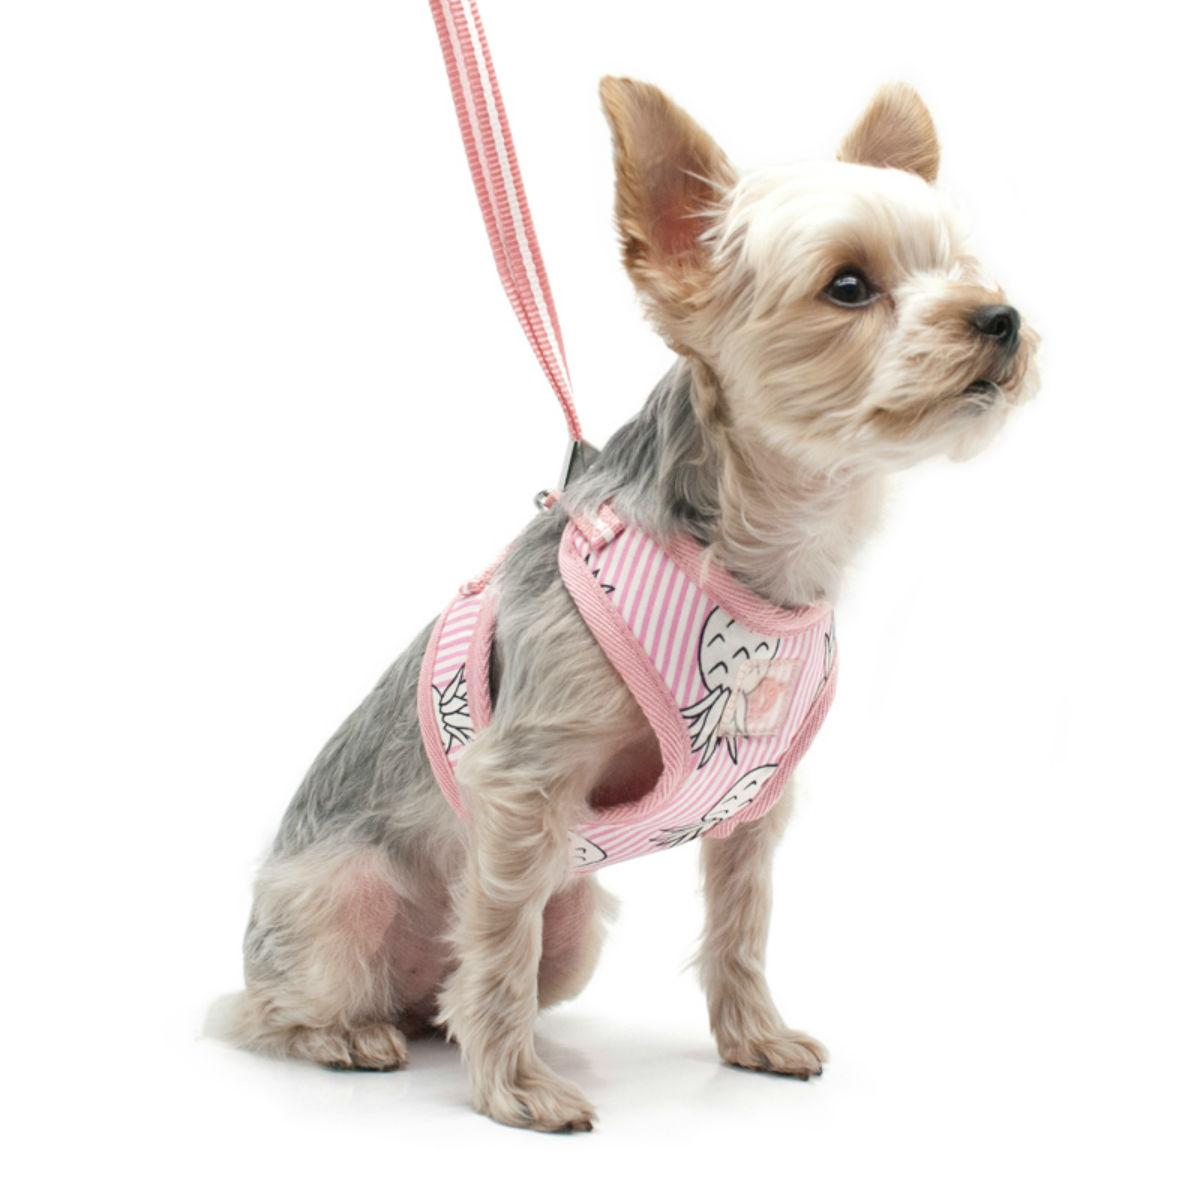 EasyGO Pineapple Dog Harness by Dogo - Pink